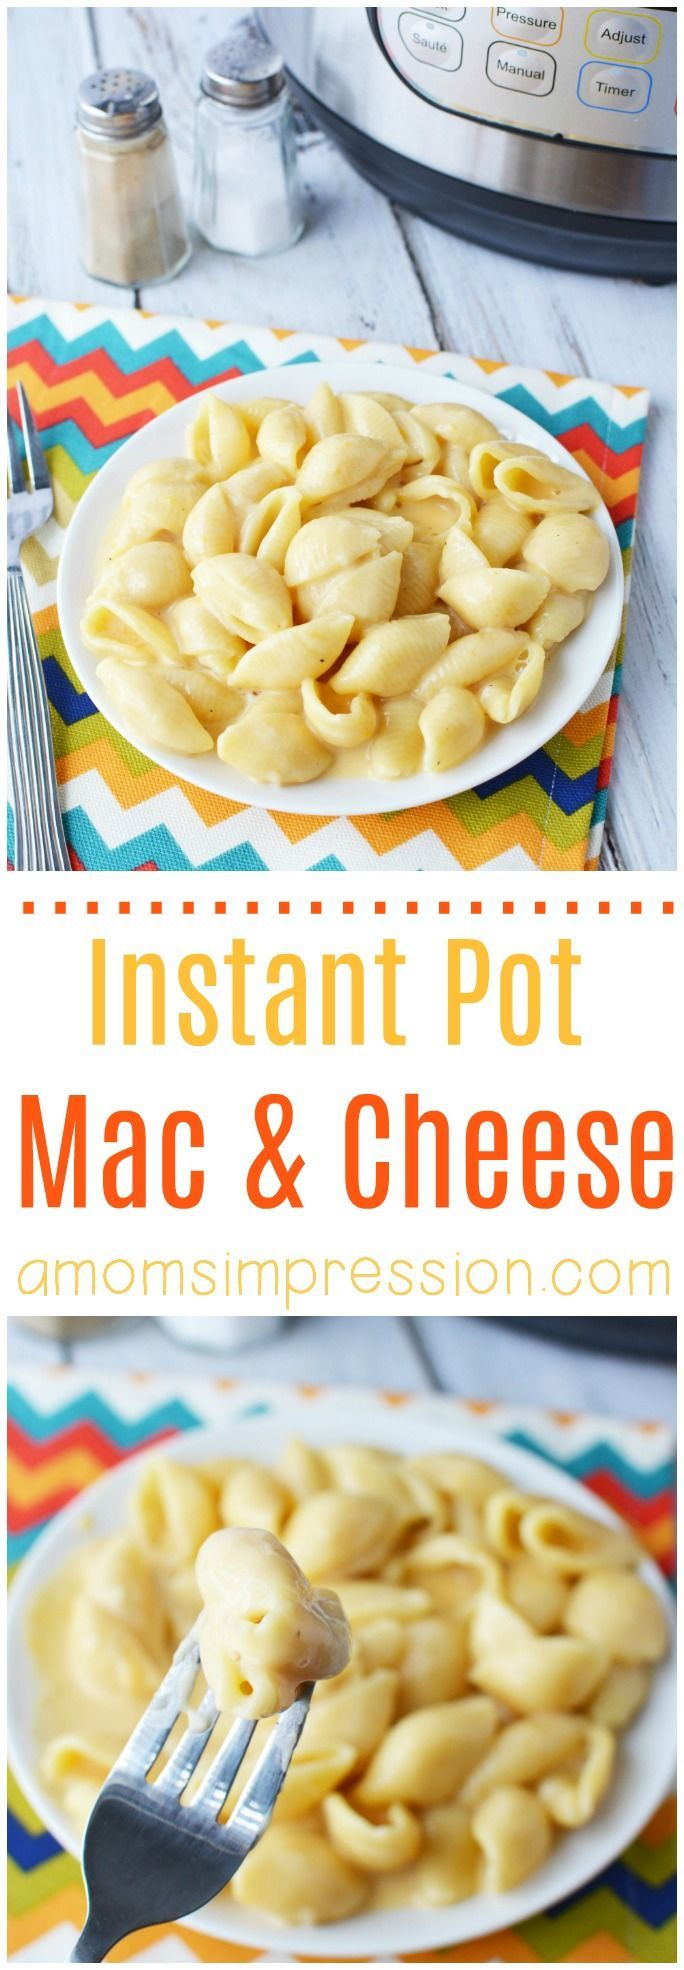 I've searched long and hard for the best and most creamy Instant Pot Mac  and Cheese Recipe and here it is! This simple recipe is so easy and can  be made in about 15 minutes. It uses evaporated milk and your kids are  going to love it! #macandcheese #instantPot #pressurecooker